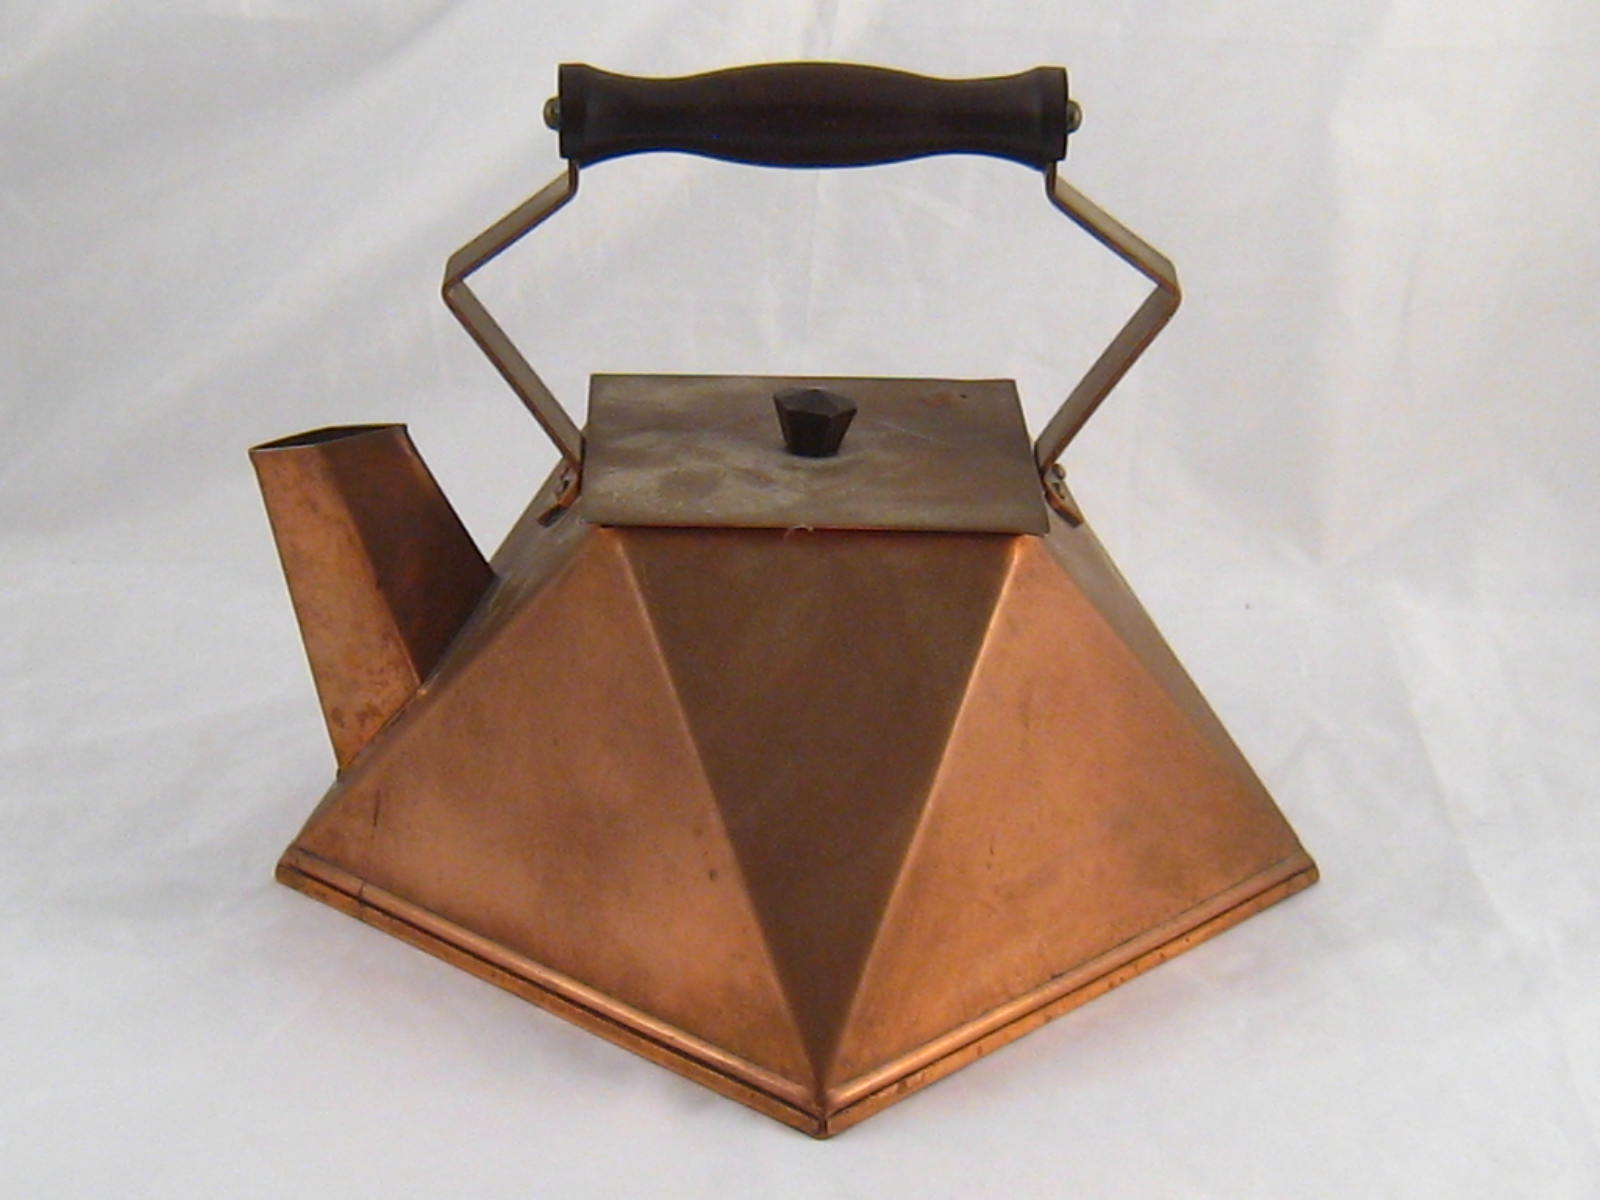 Lot 542 A Copper Kettle Of Square Geometric Design In The Manner Dr